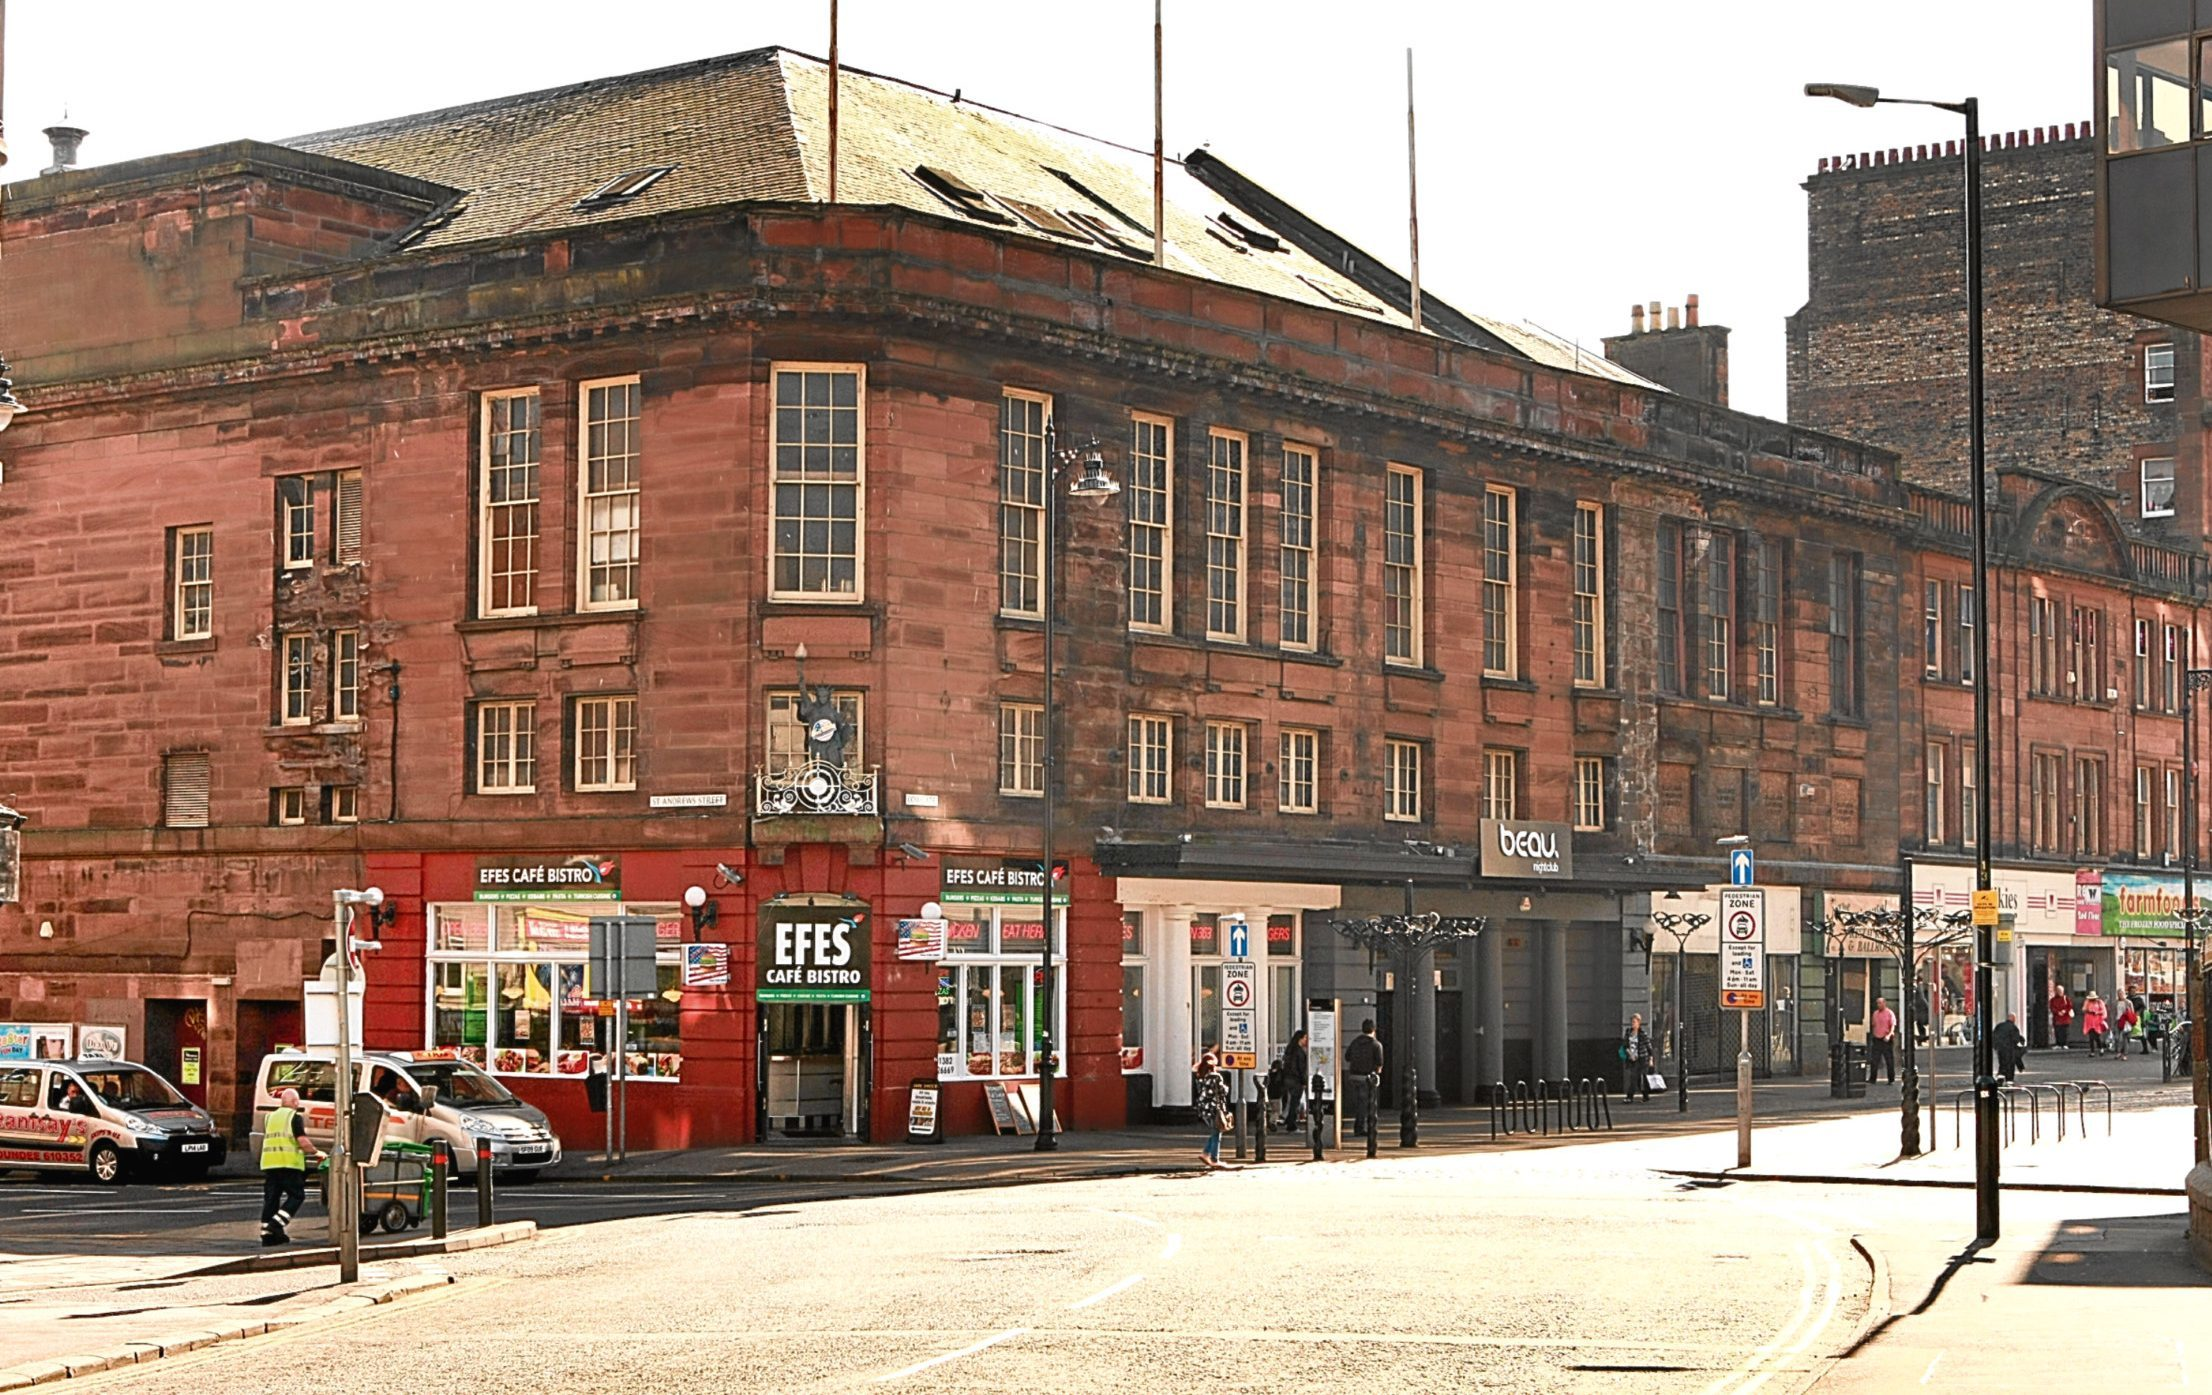 View of Cowgate and the junction with St Andrews Street, showing the former Kings Theatre